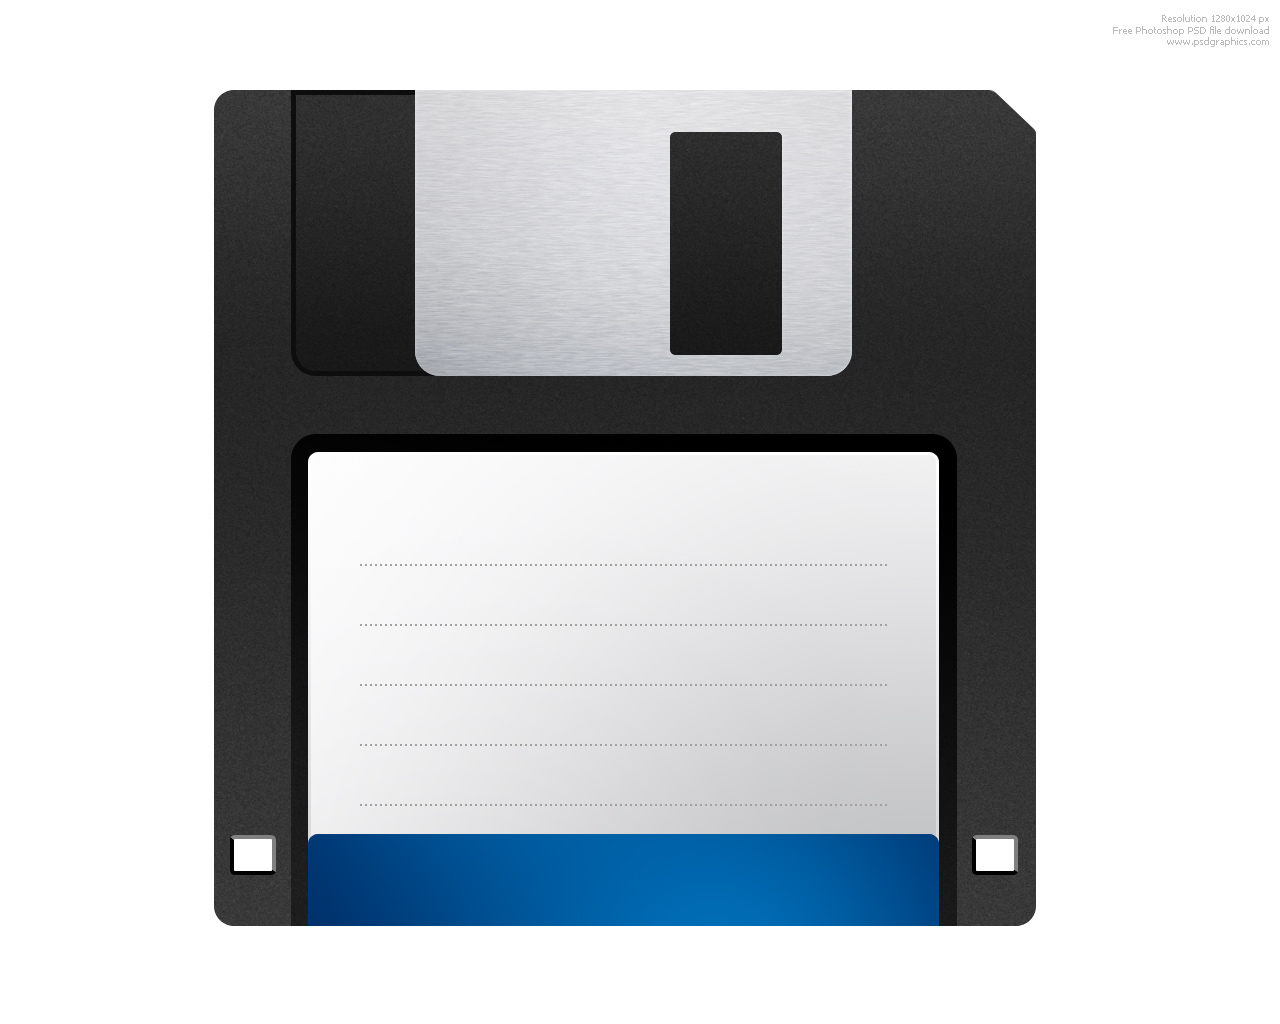 5 Floppy Disk Save Icon Images